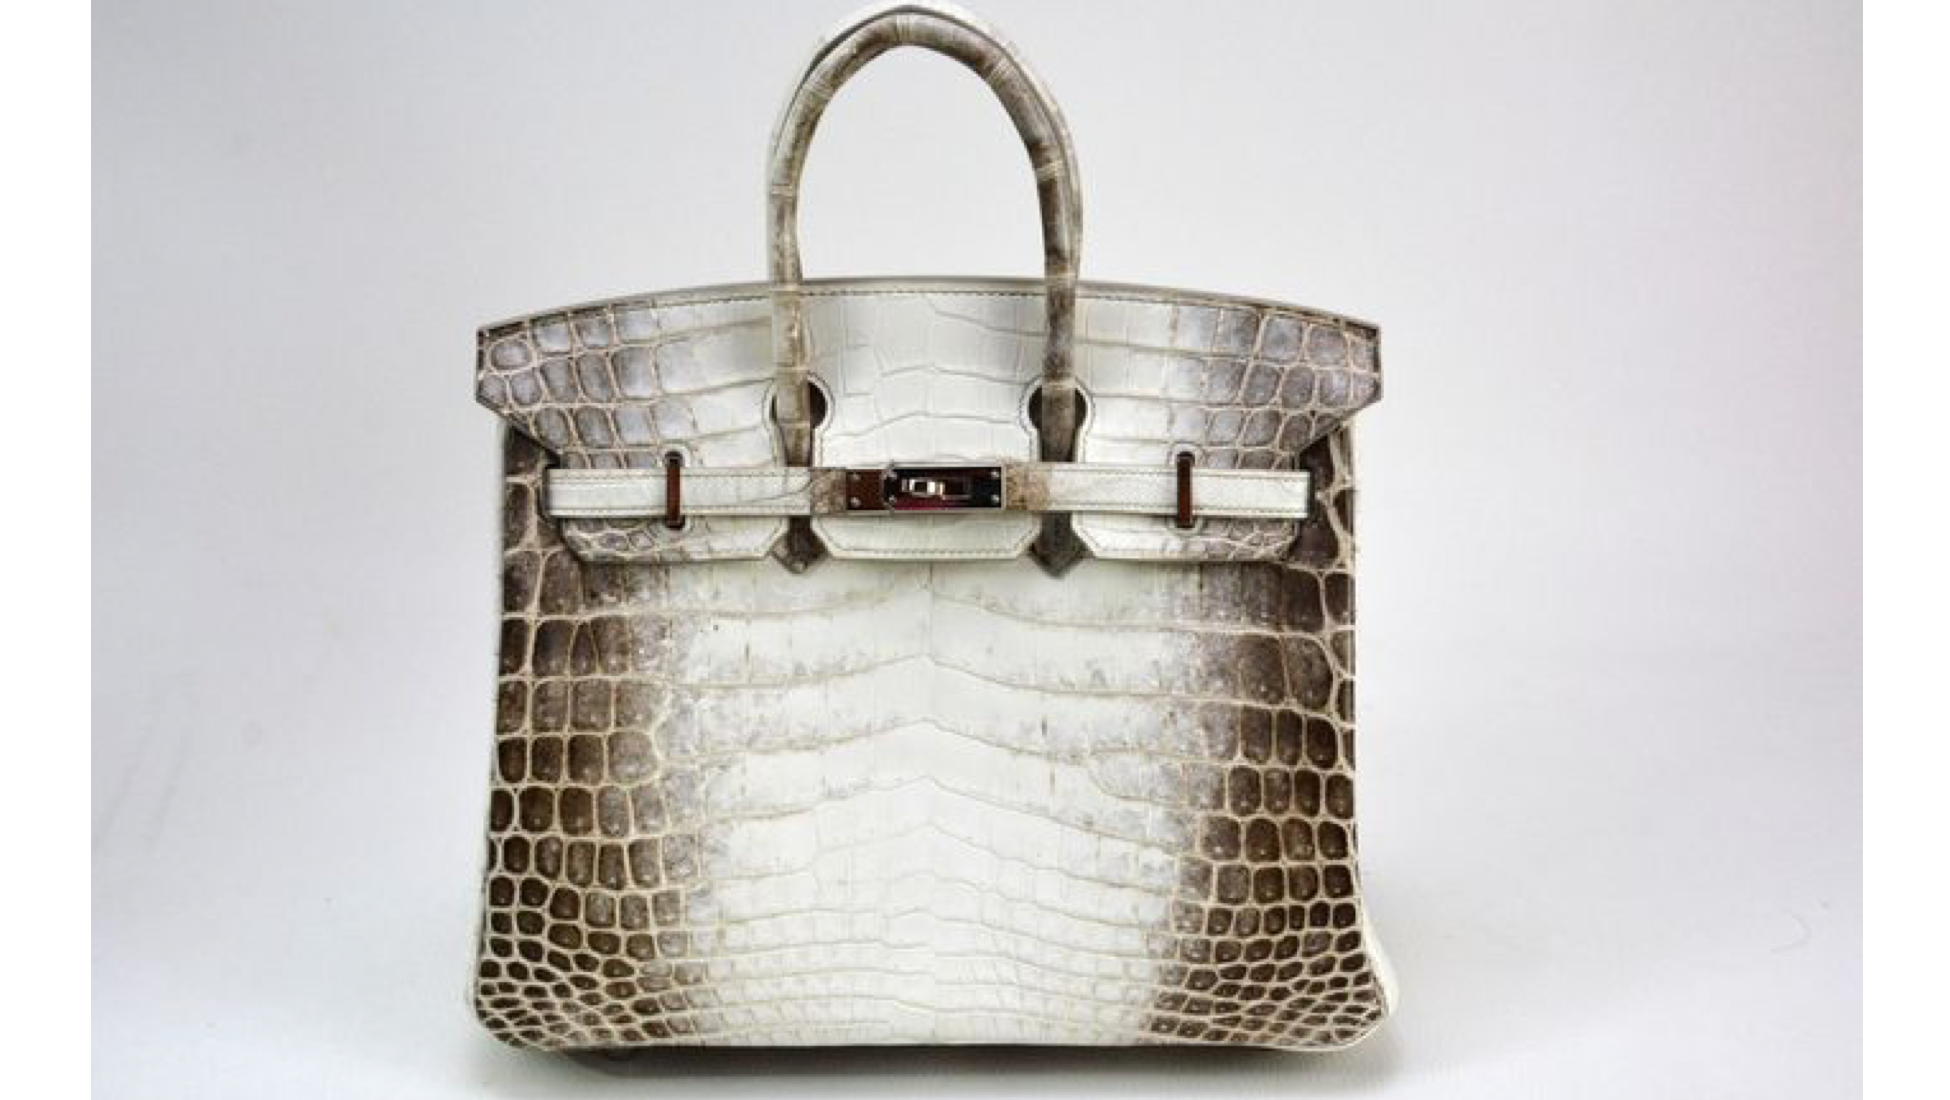 10 Facts About the Hermès Birkin Bag We Bet You Didn t Know - Catawiki c14e1fa8b7